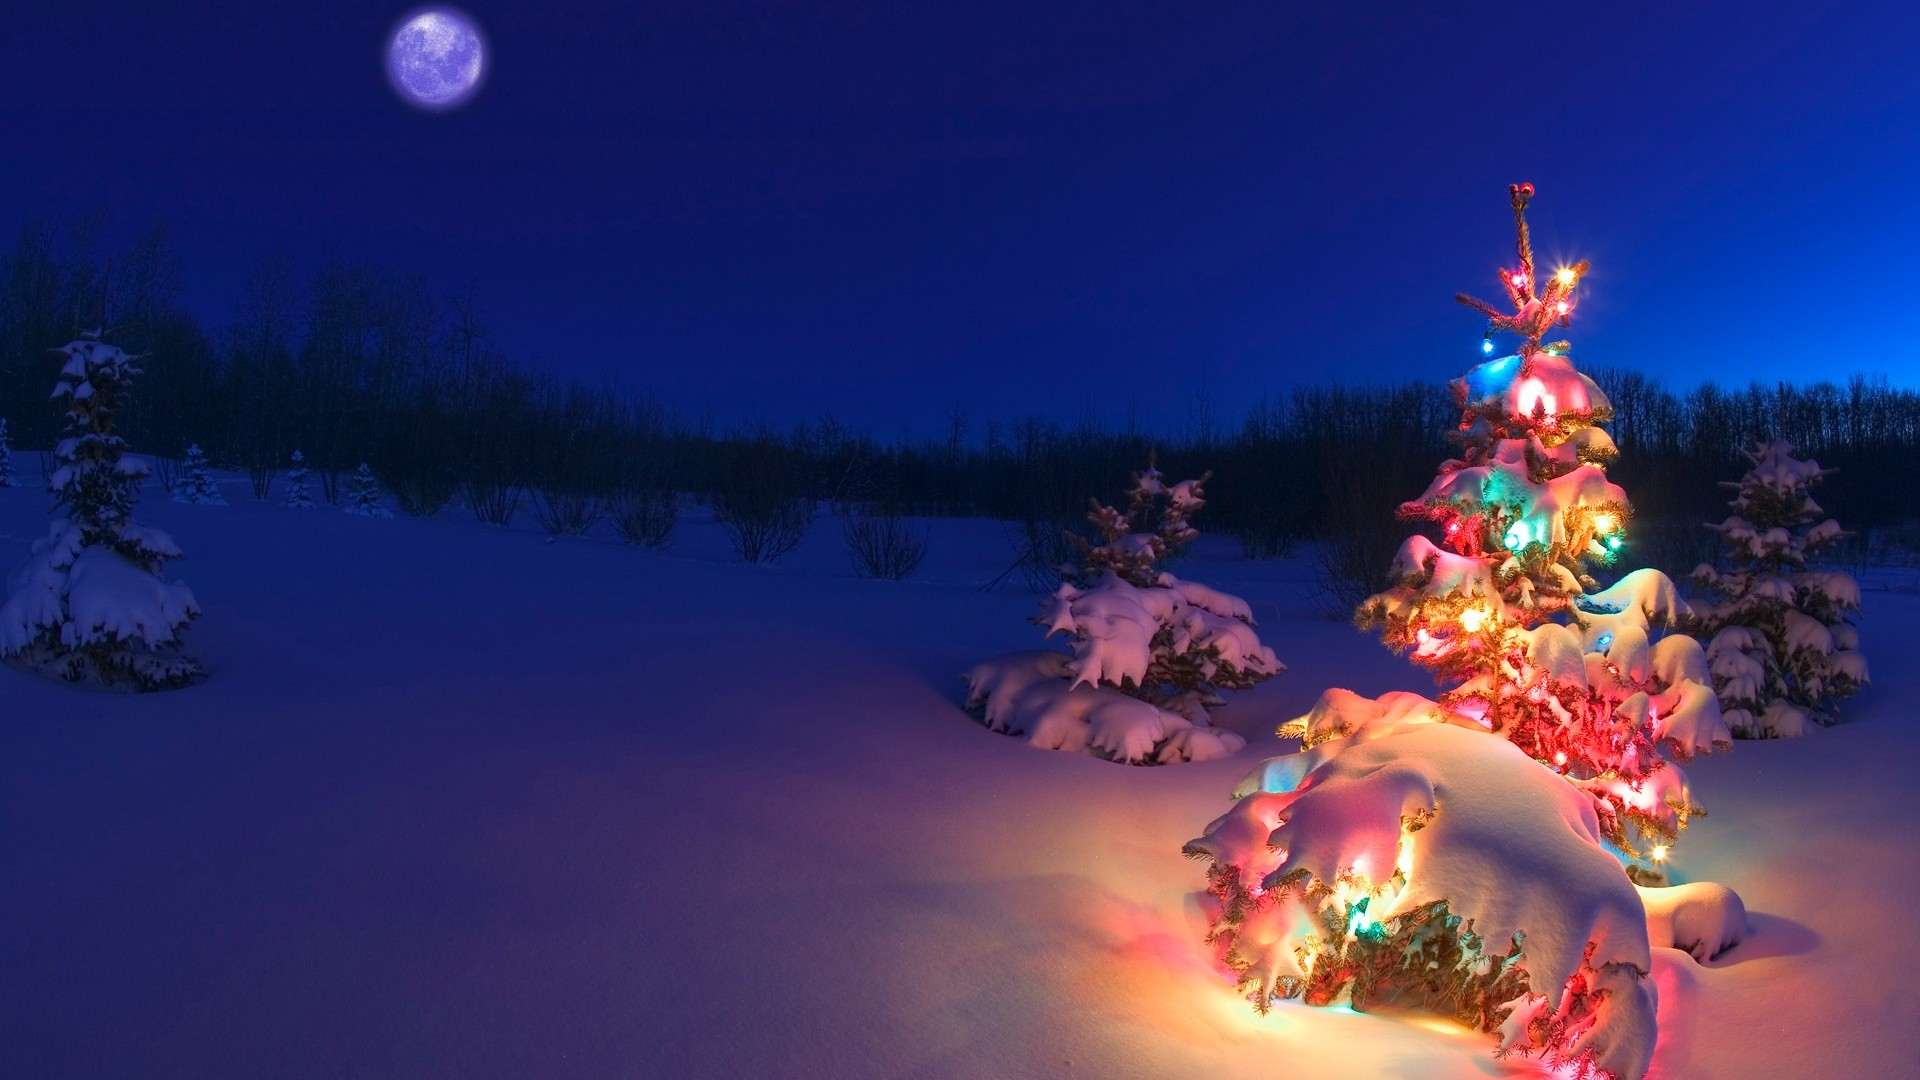 1920x1080 Download Merry Christmas HD Image ...